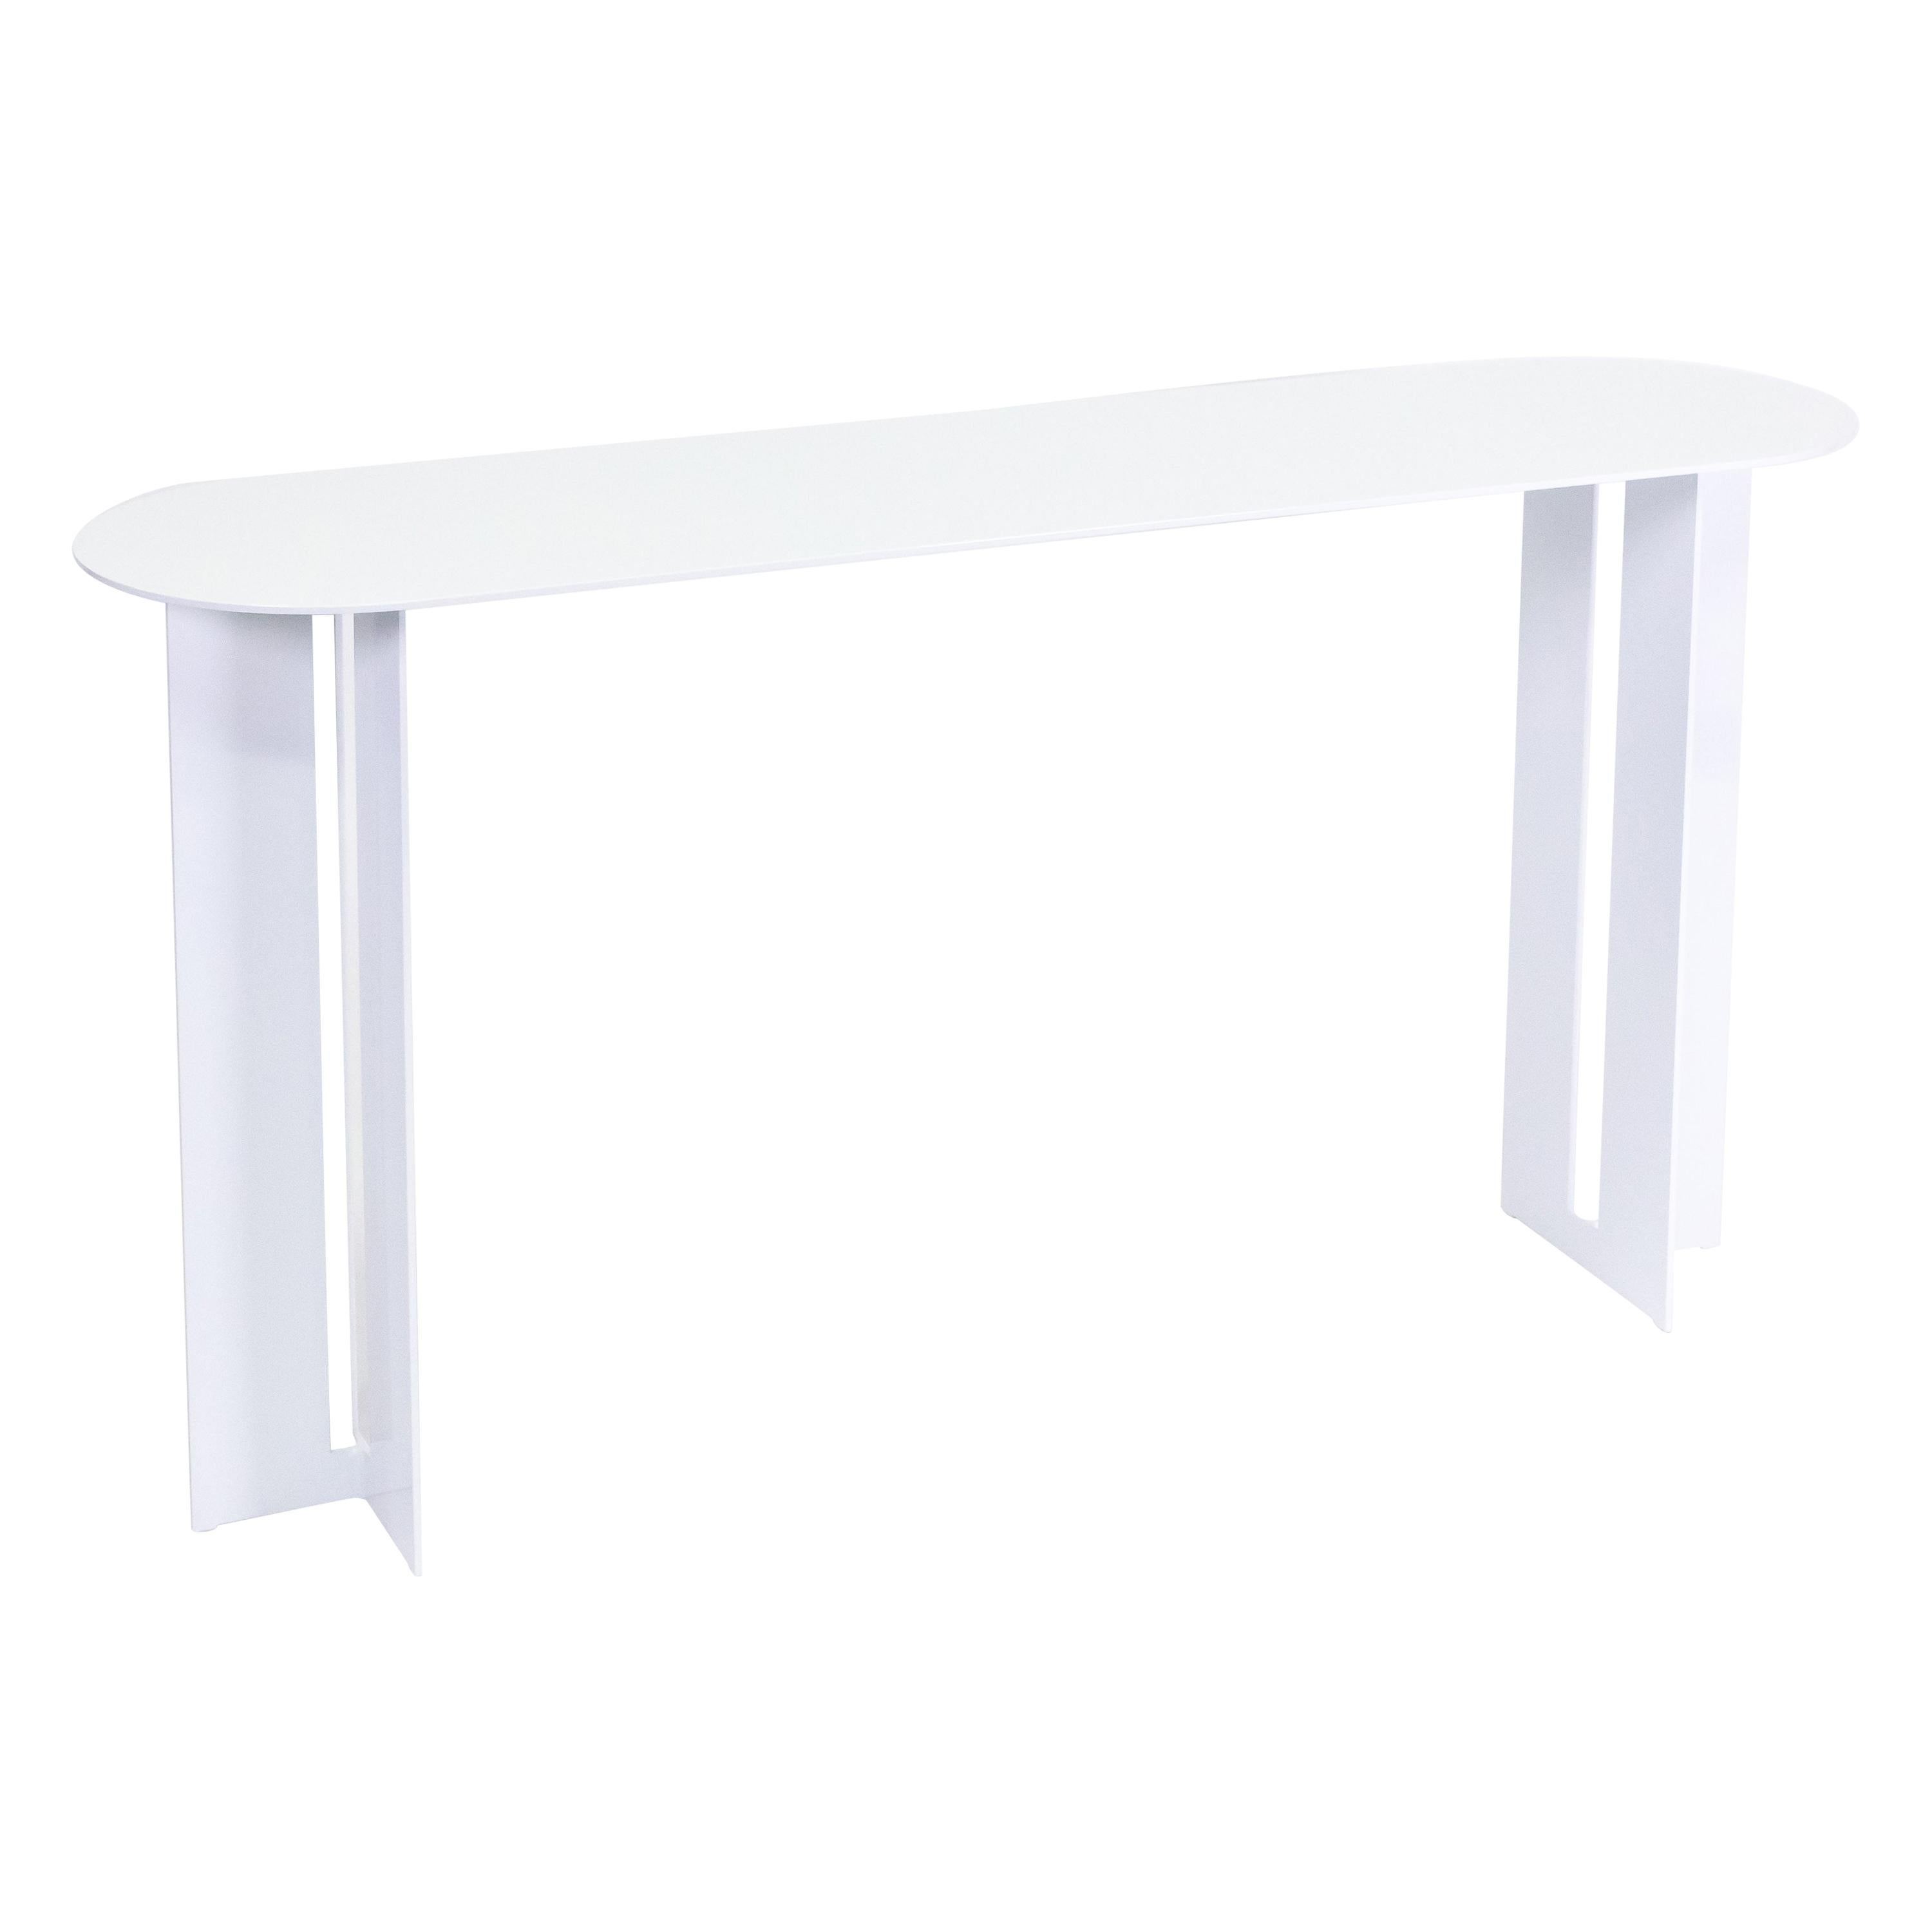 Mers Console Table in Powdercoat Aluminum White